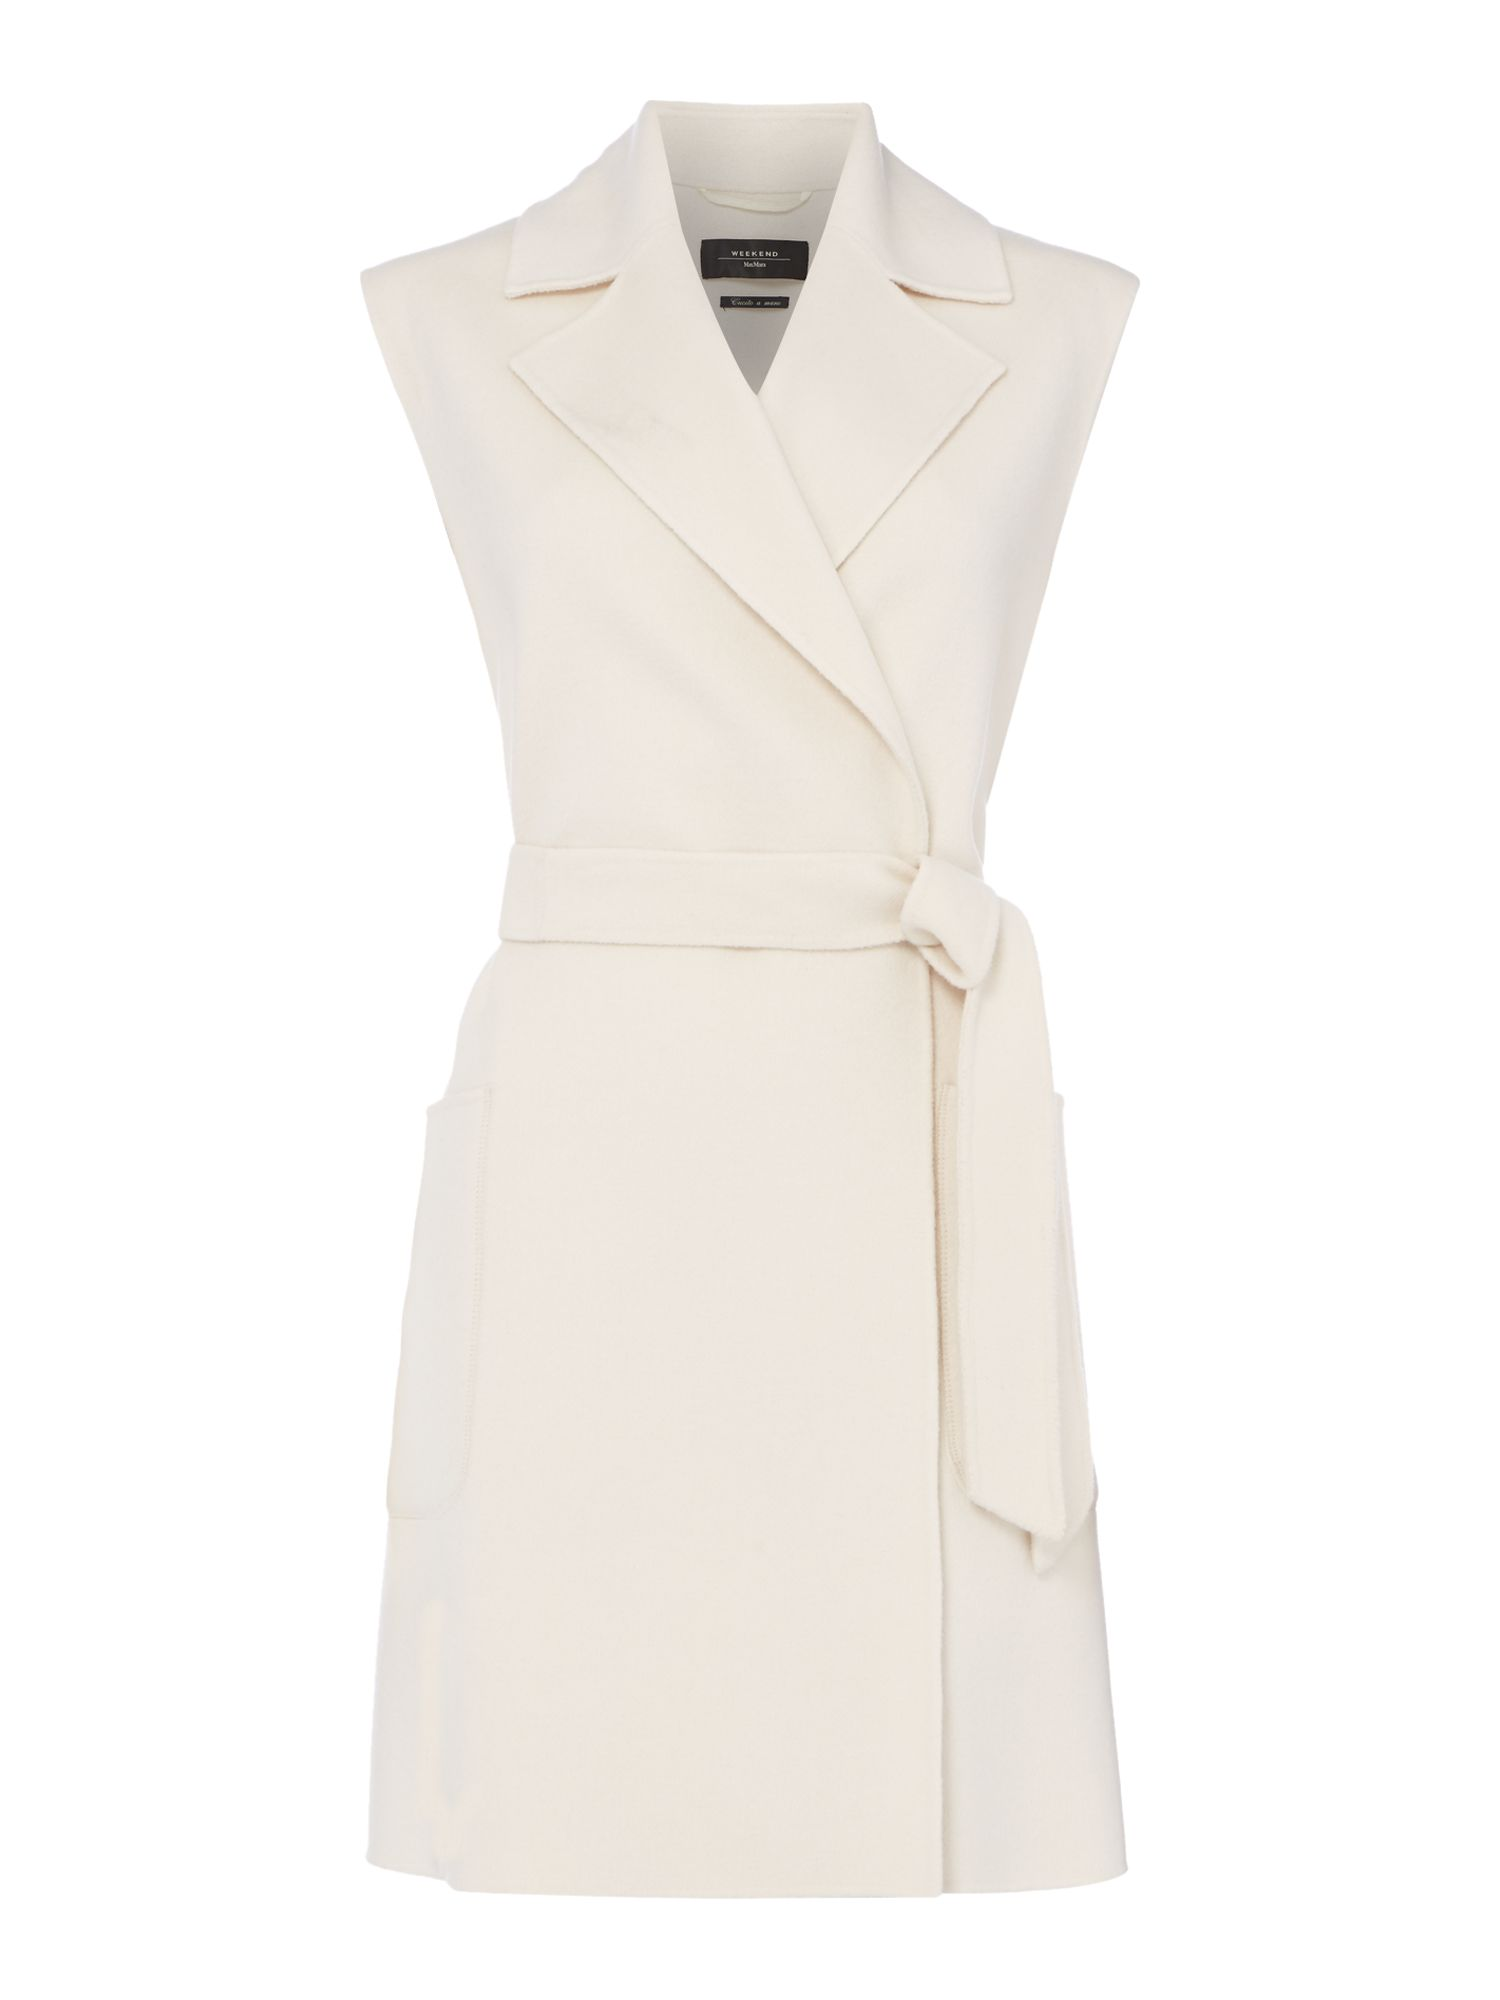 Max Mara Weekend Bondeno Sleeveless Coat With Belt, White